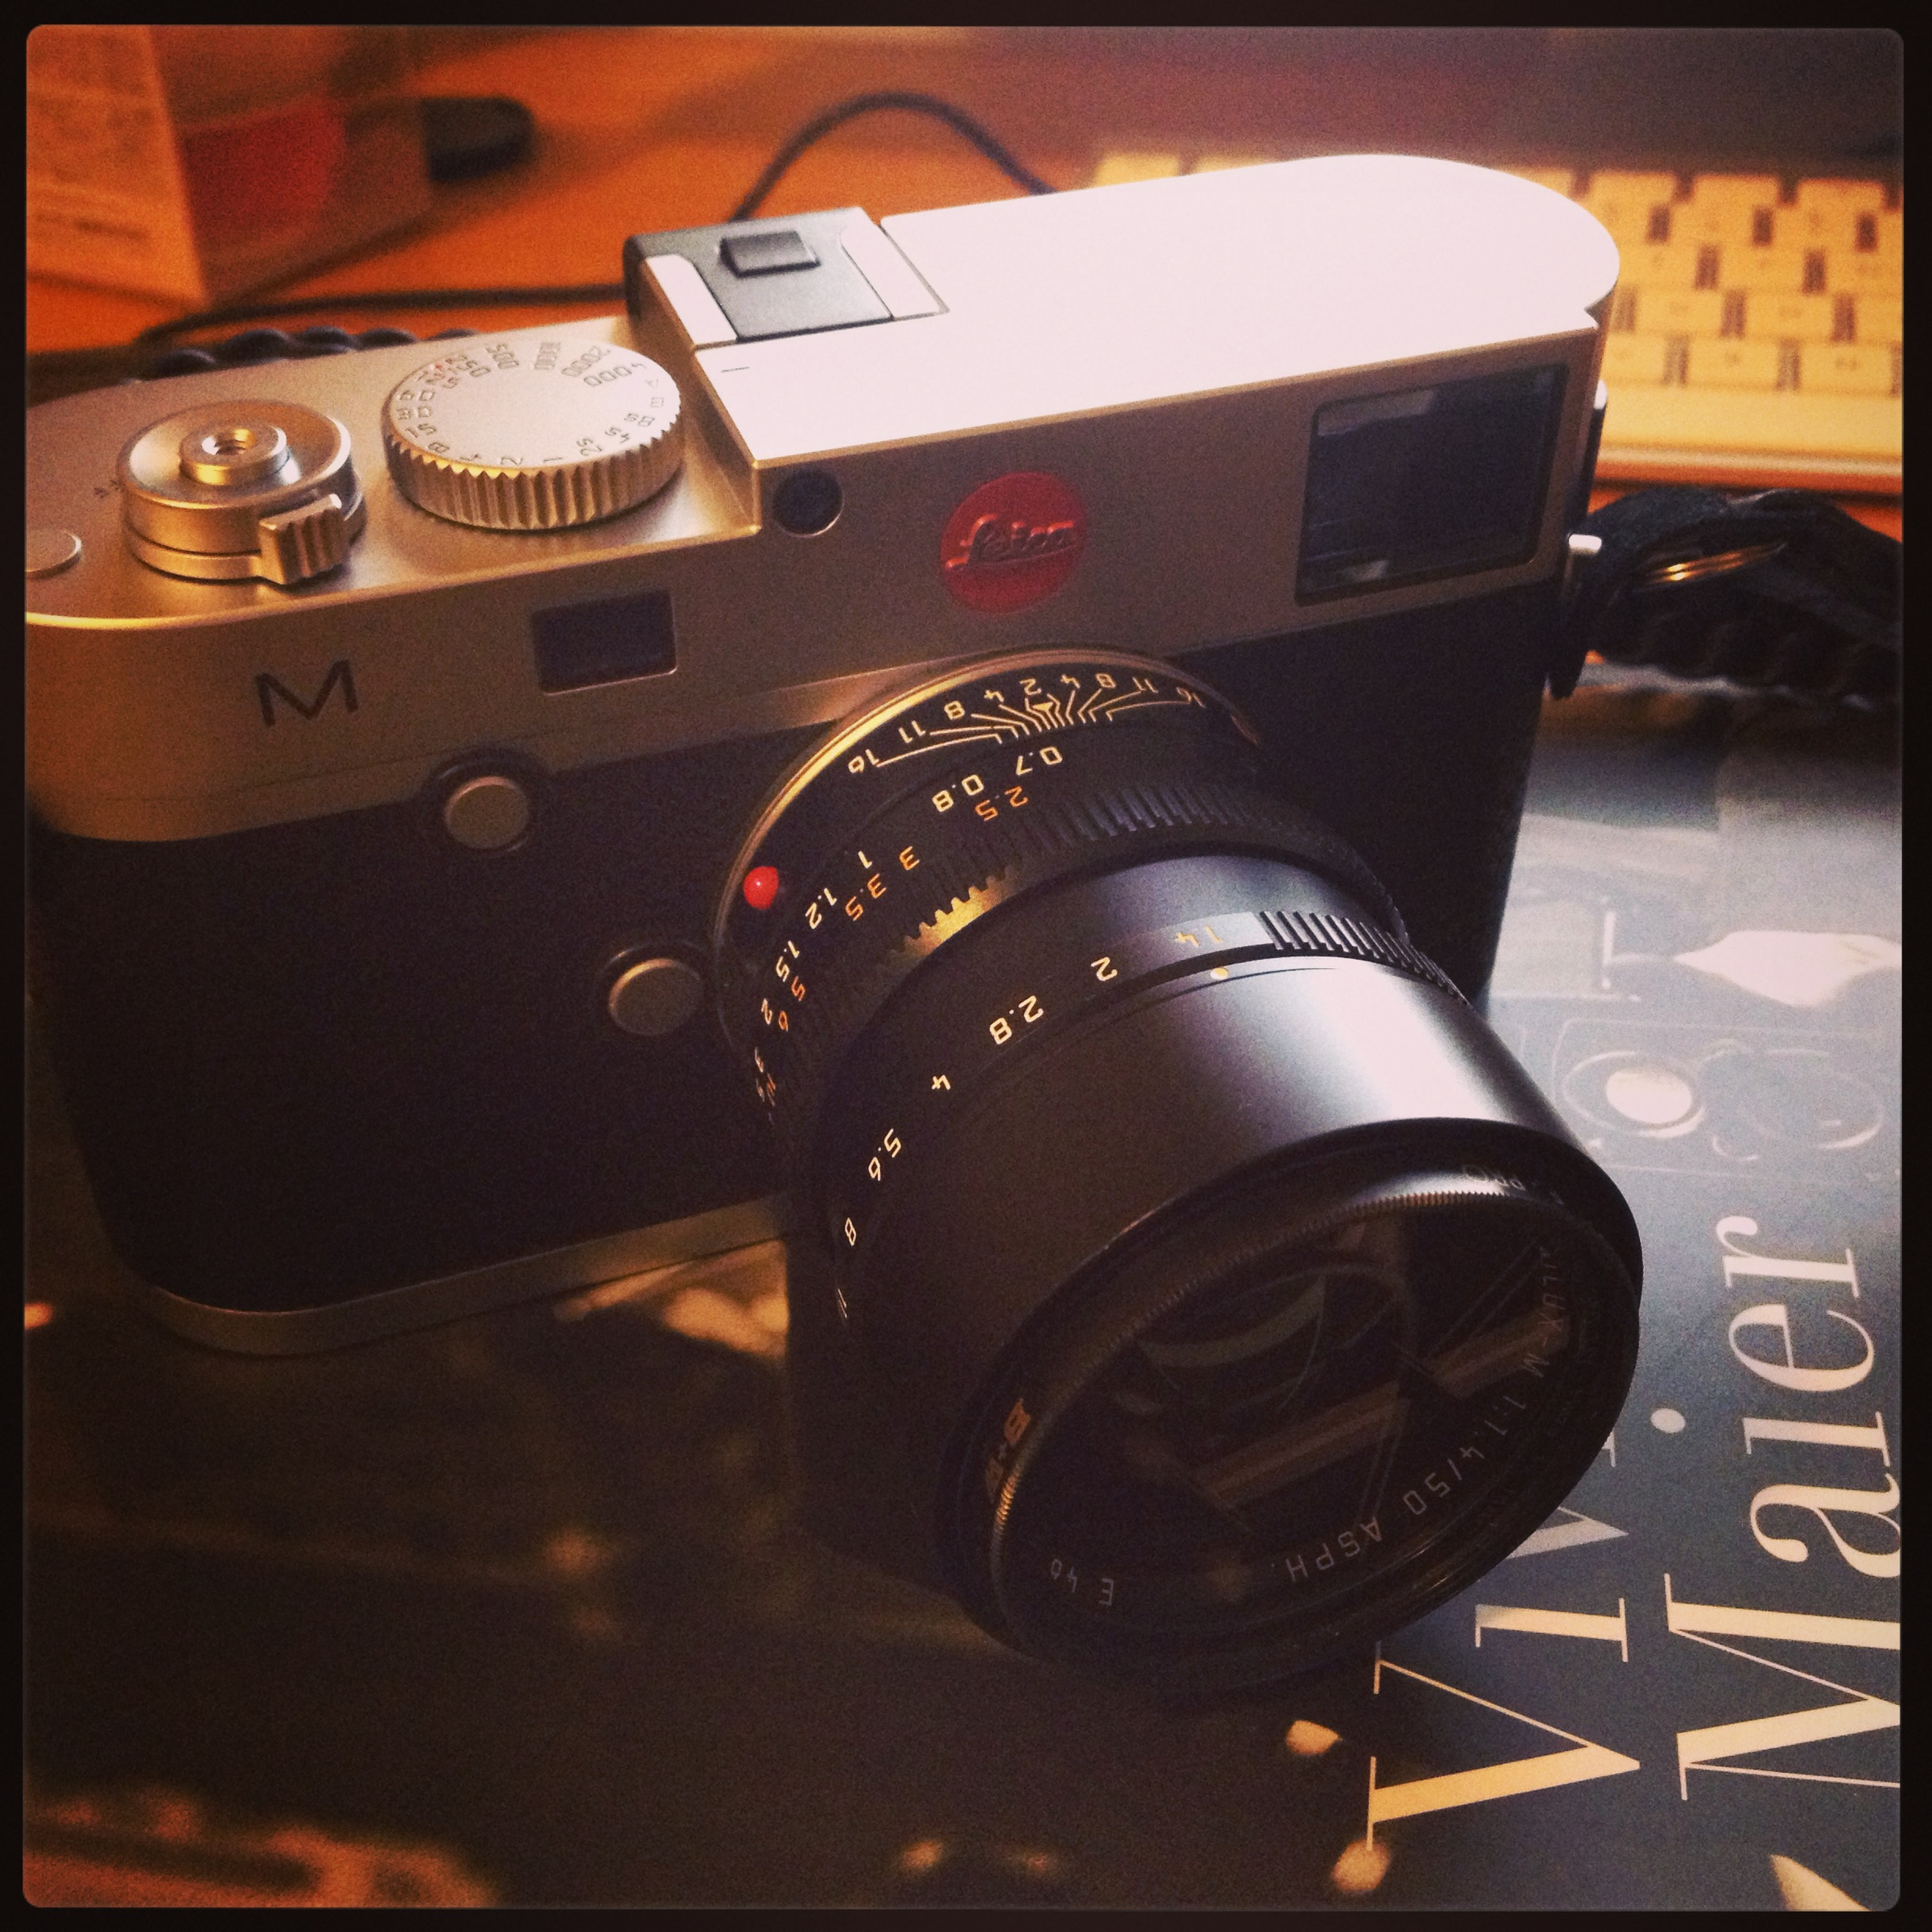 Leica M 240 & 50 Summilux ASPH (Black)